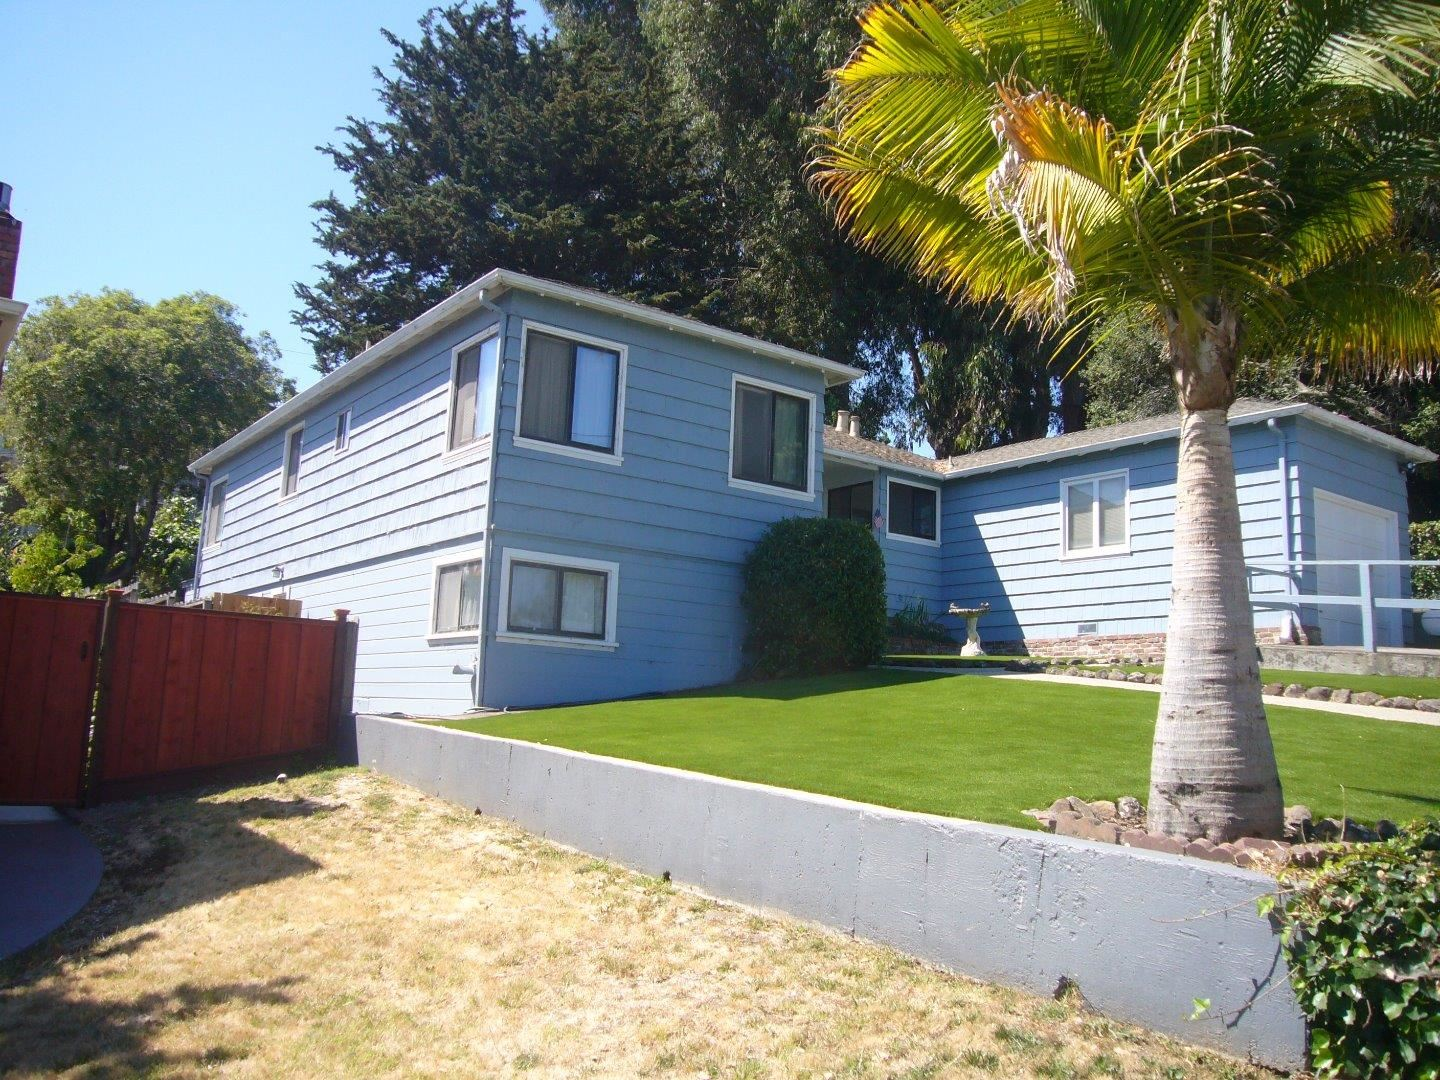 Photo for 311 W 39th AVE, SAN MATEO, CA 94403 (MLS # ML81766768)